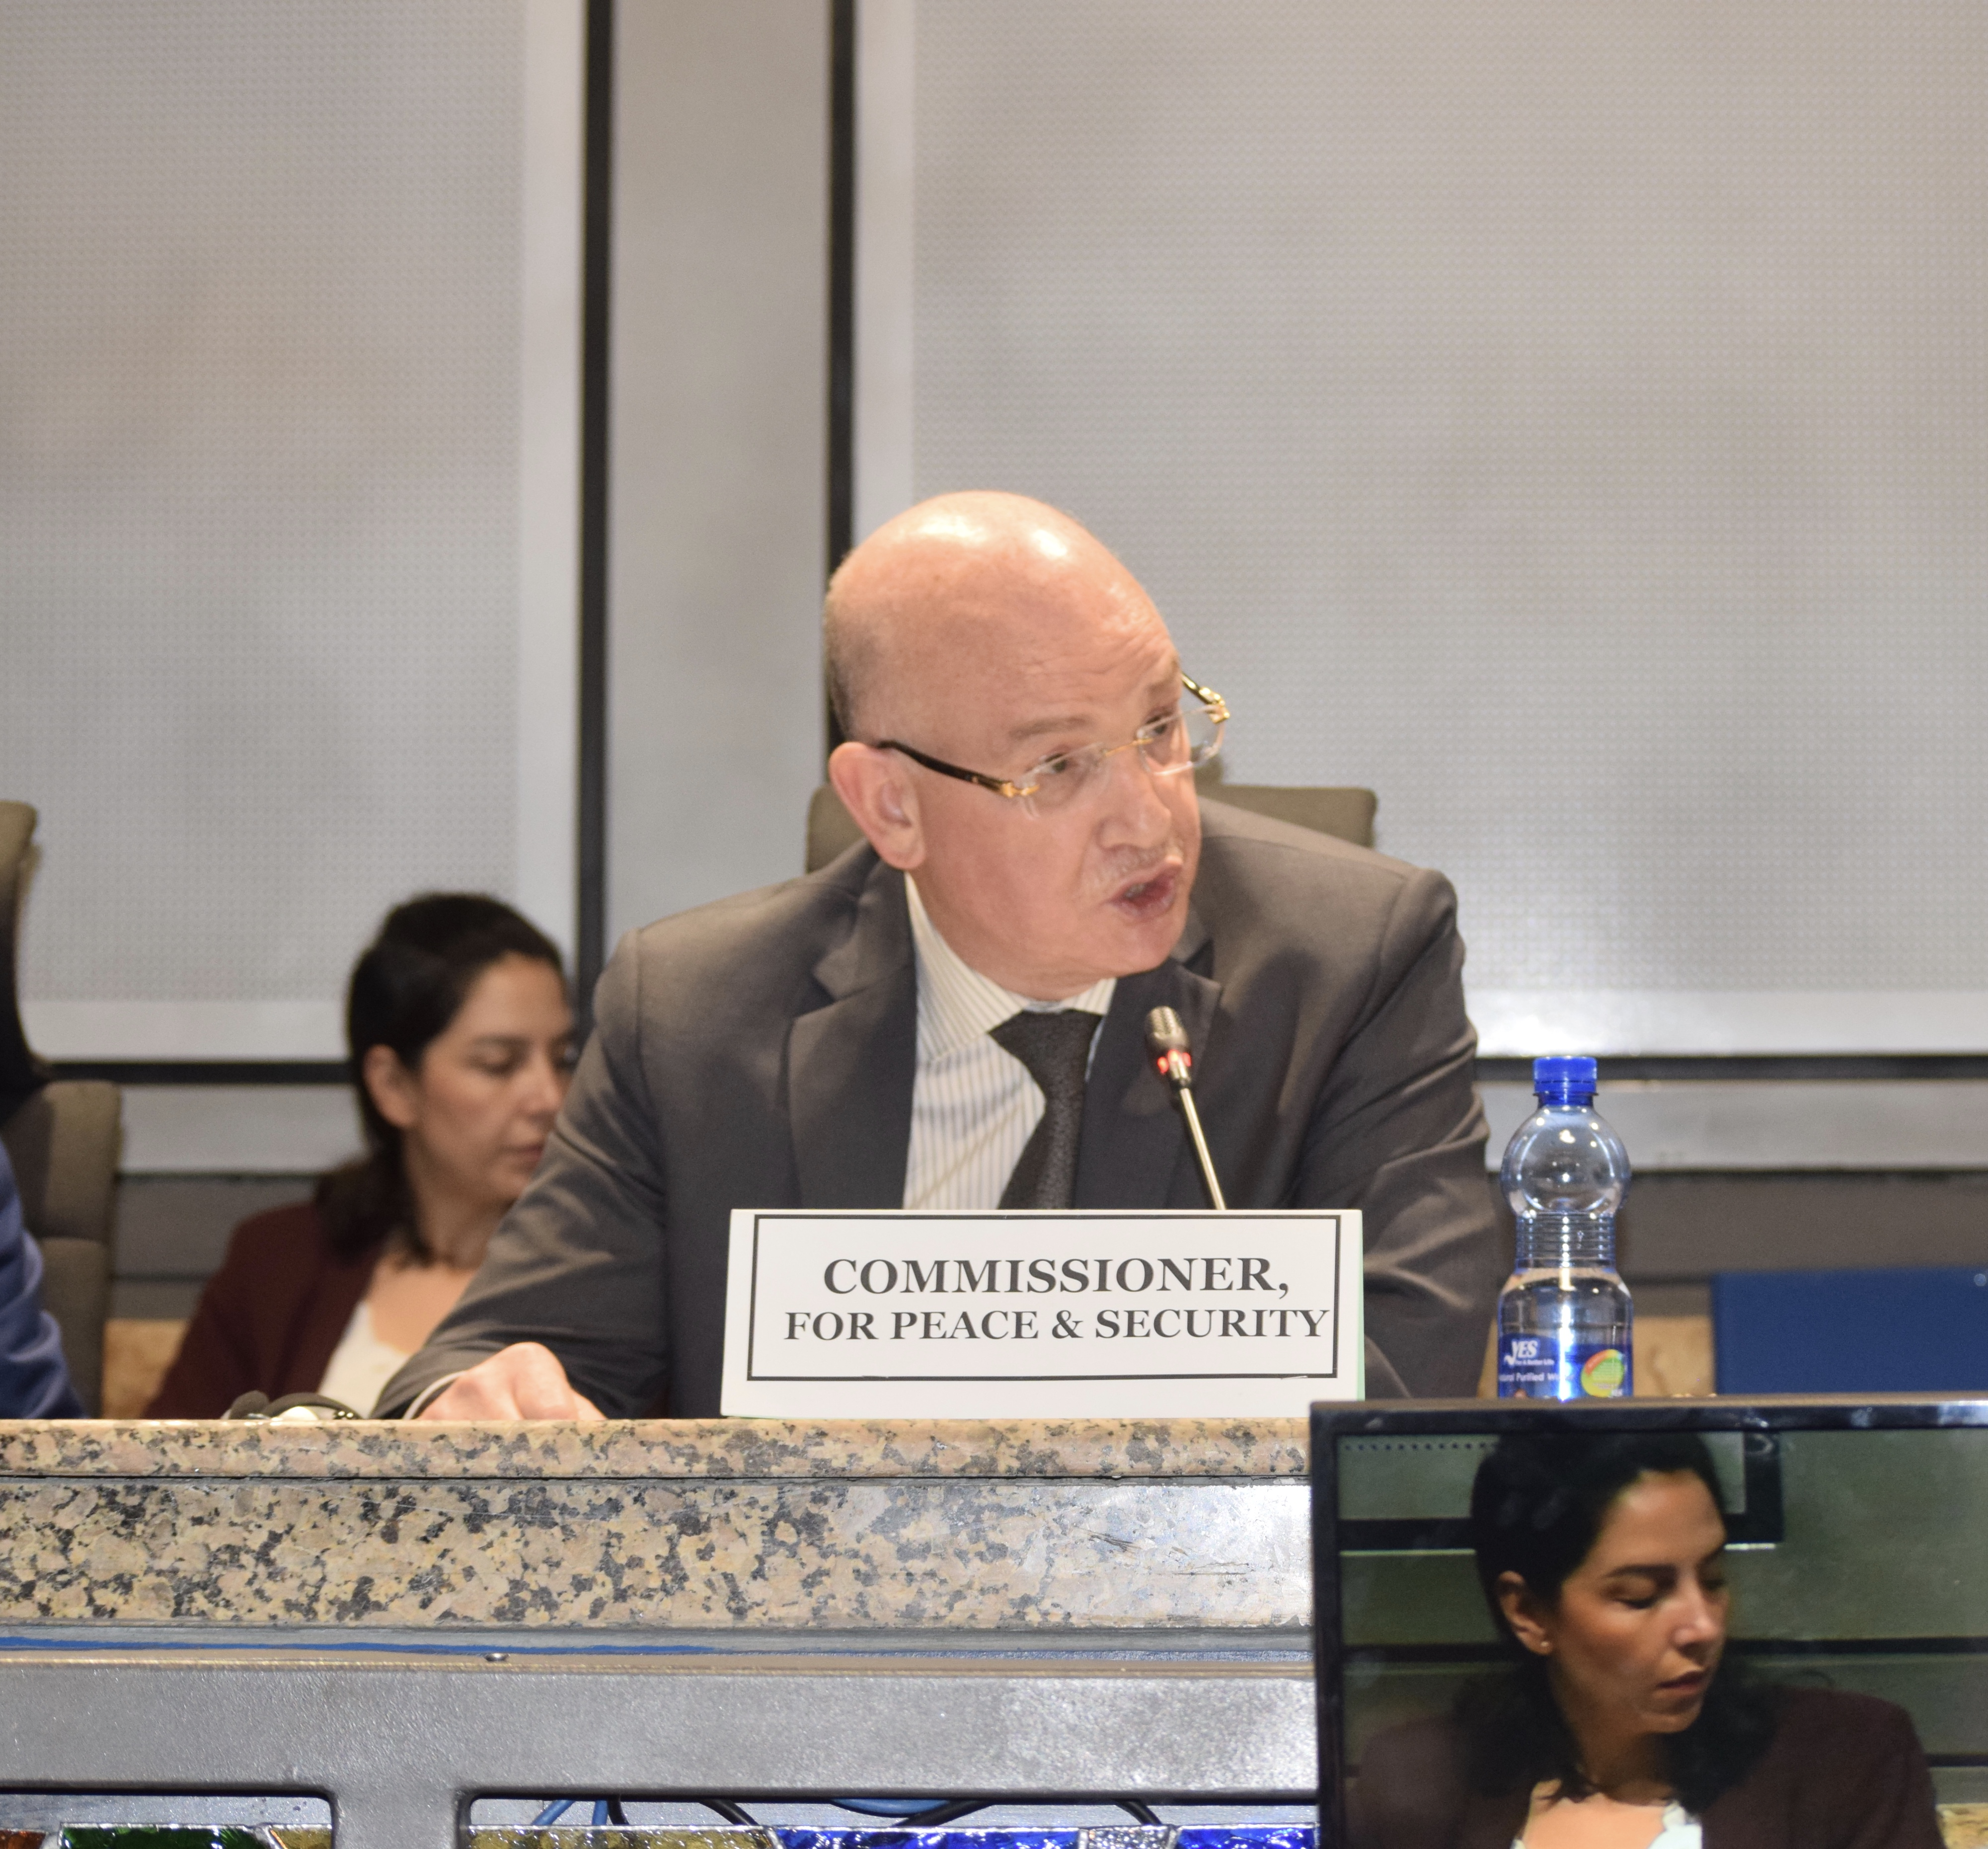 Statement made by His Excellency Ambassador Smail Chergui, Commissioner for Peace and Security to the African Union Peace and Security Council and United Nations Peacebuilding Commission Interactive Dialogue, Addis Ababa, Monday 11 November 2019